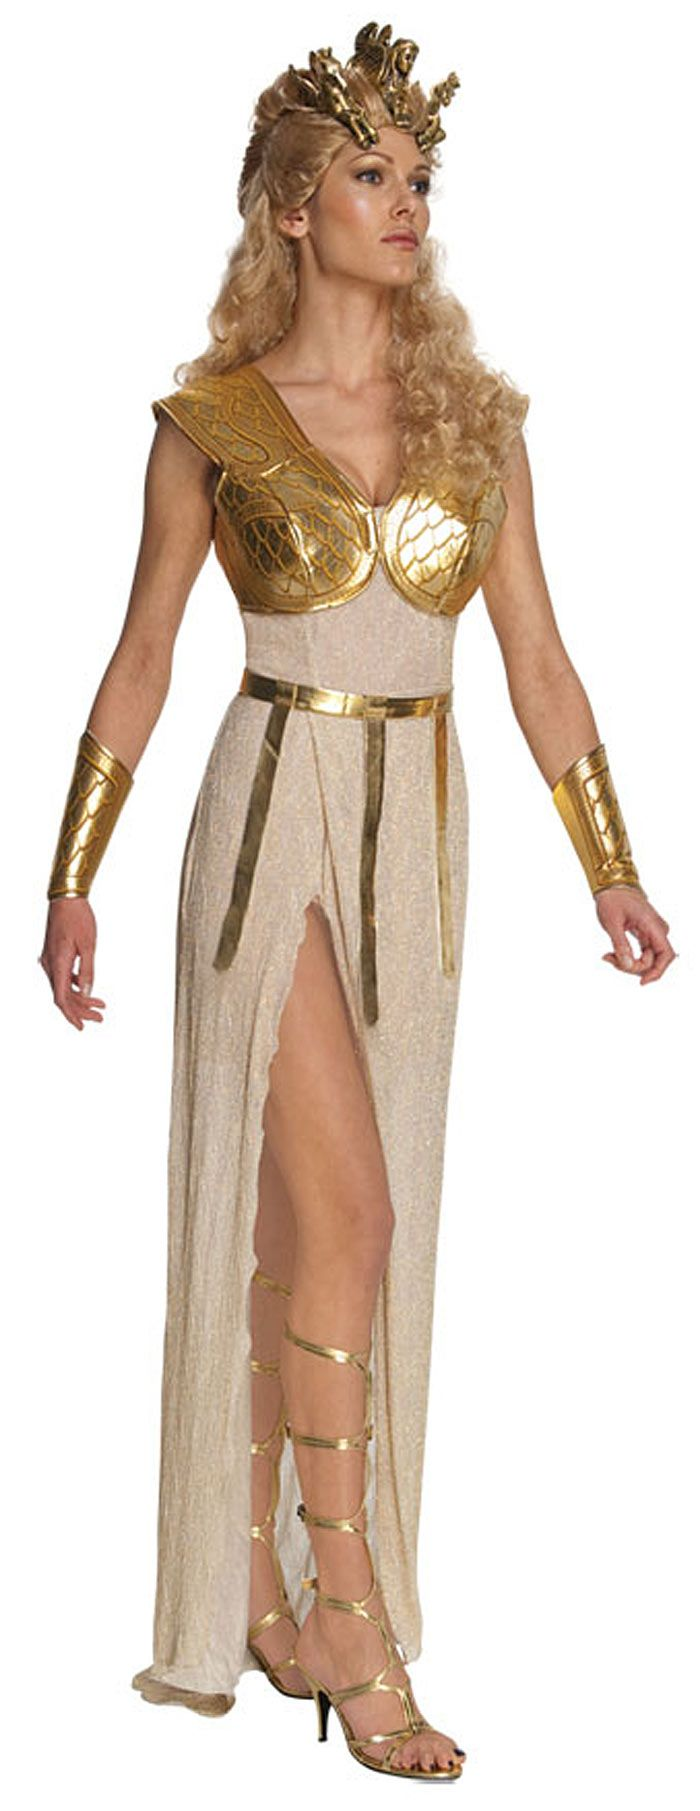 Best 25 Greek Garden Ideas On Pinterest: Best 25+ Greek Goddess Costume Ideas On Pinterest